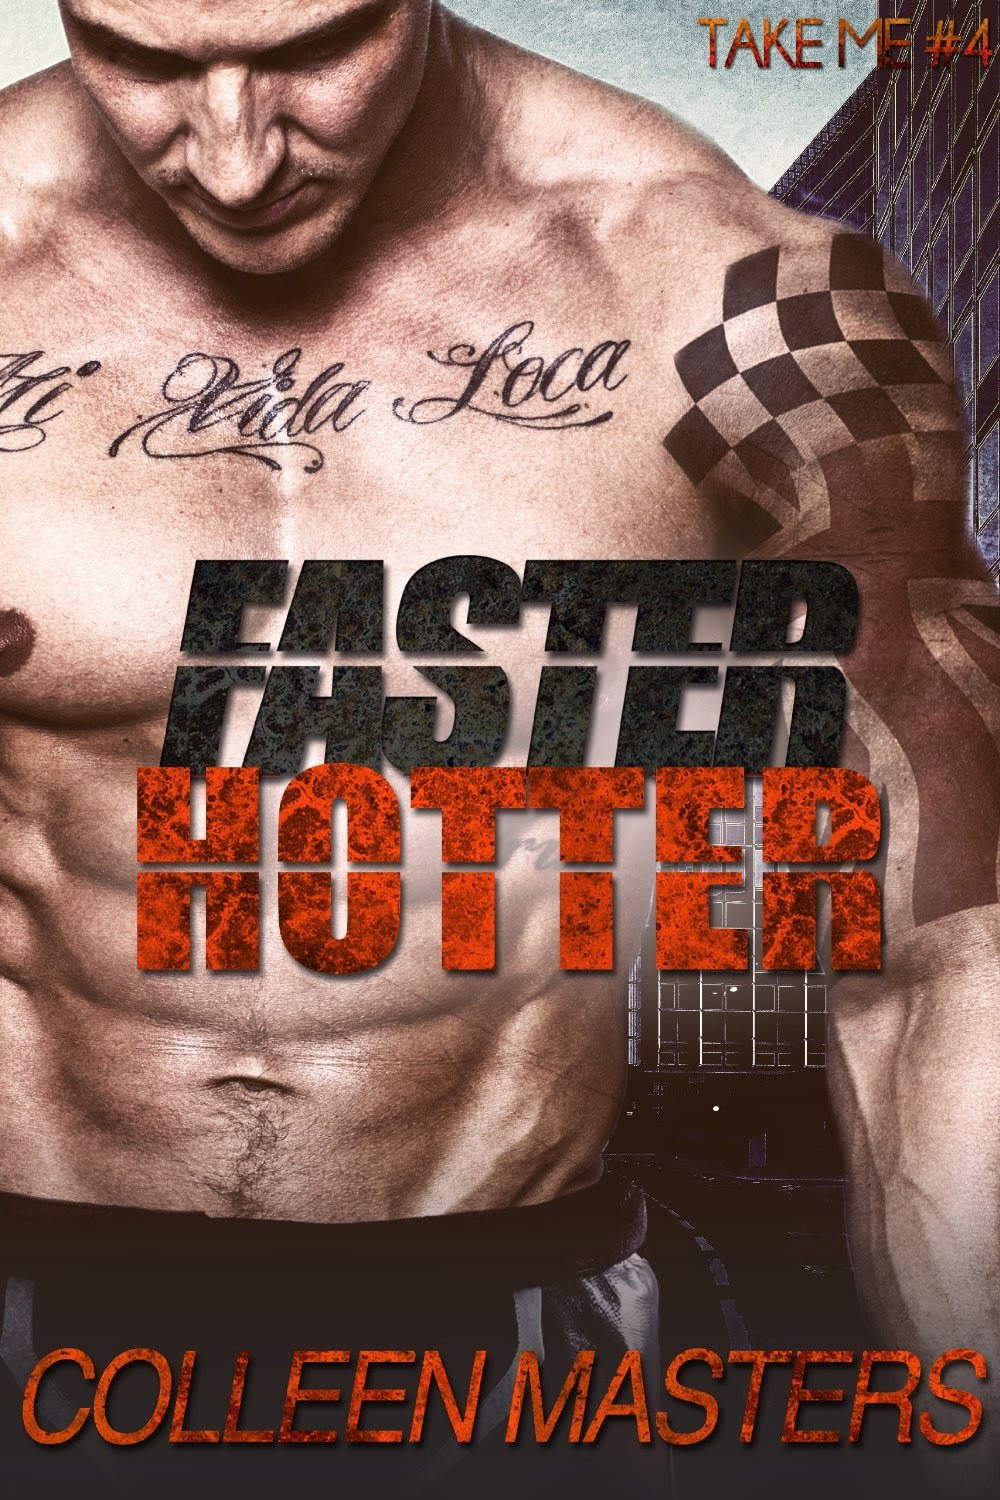 Faster Hotter